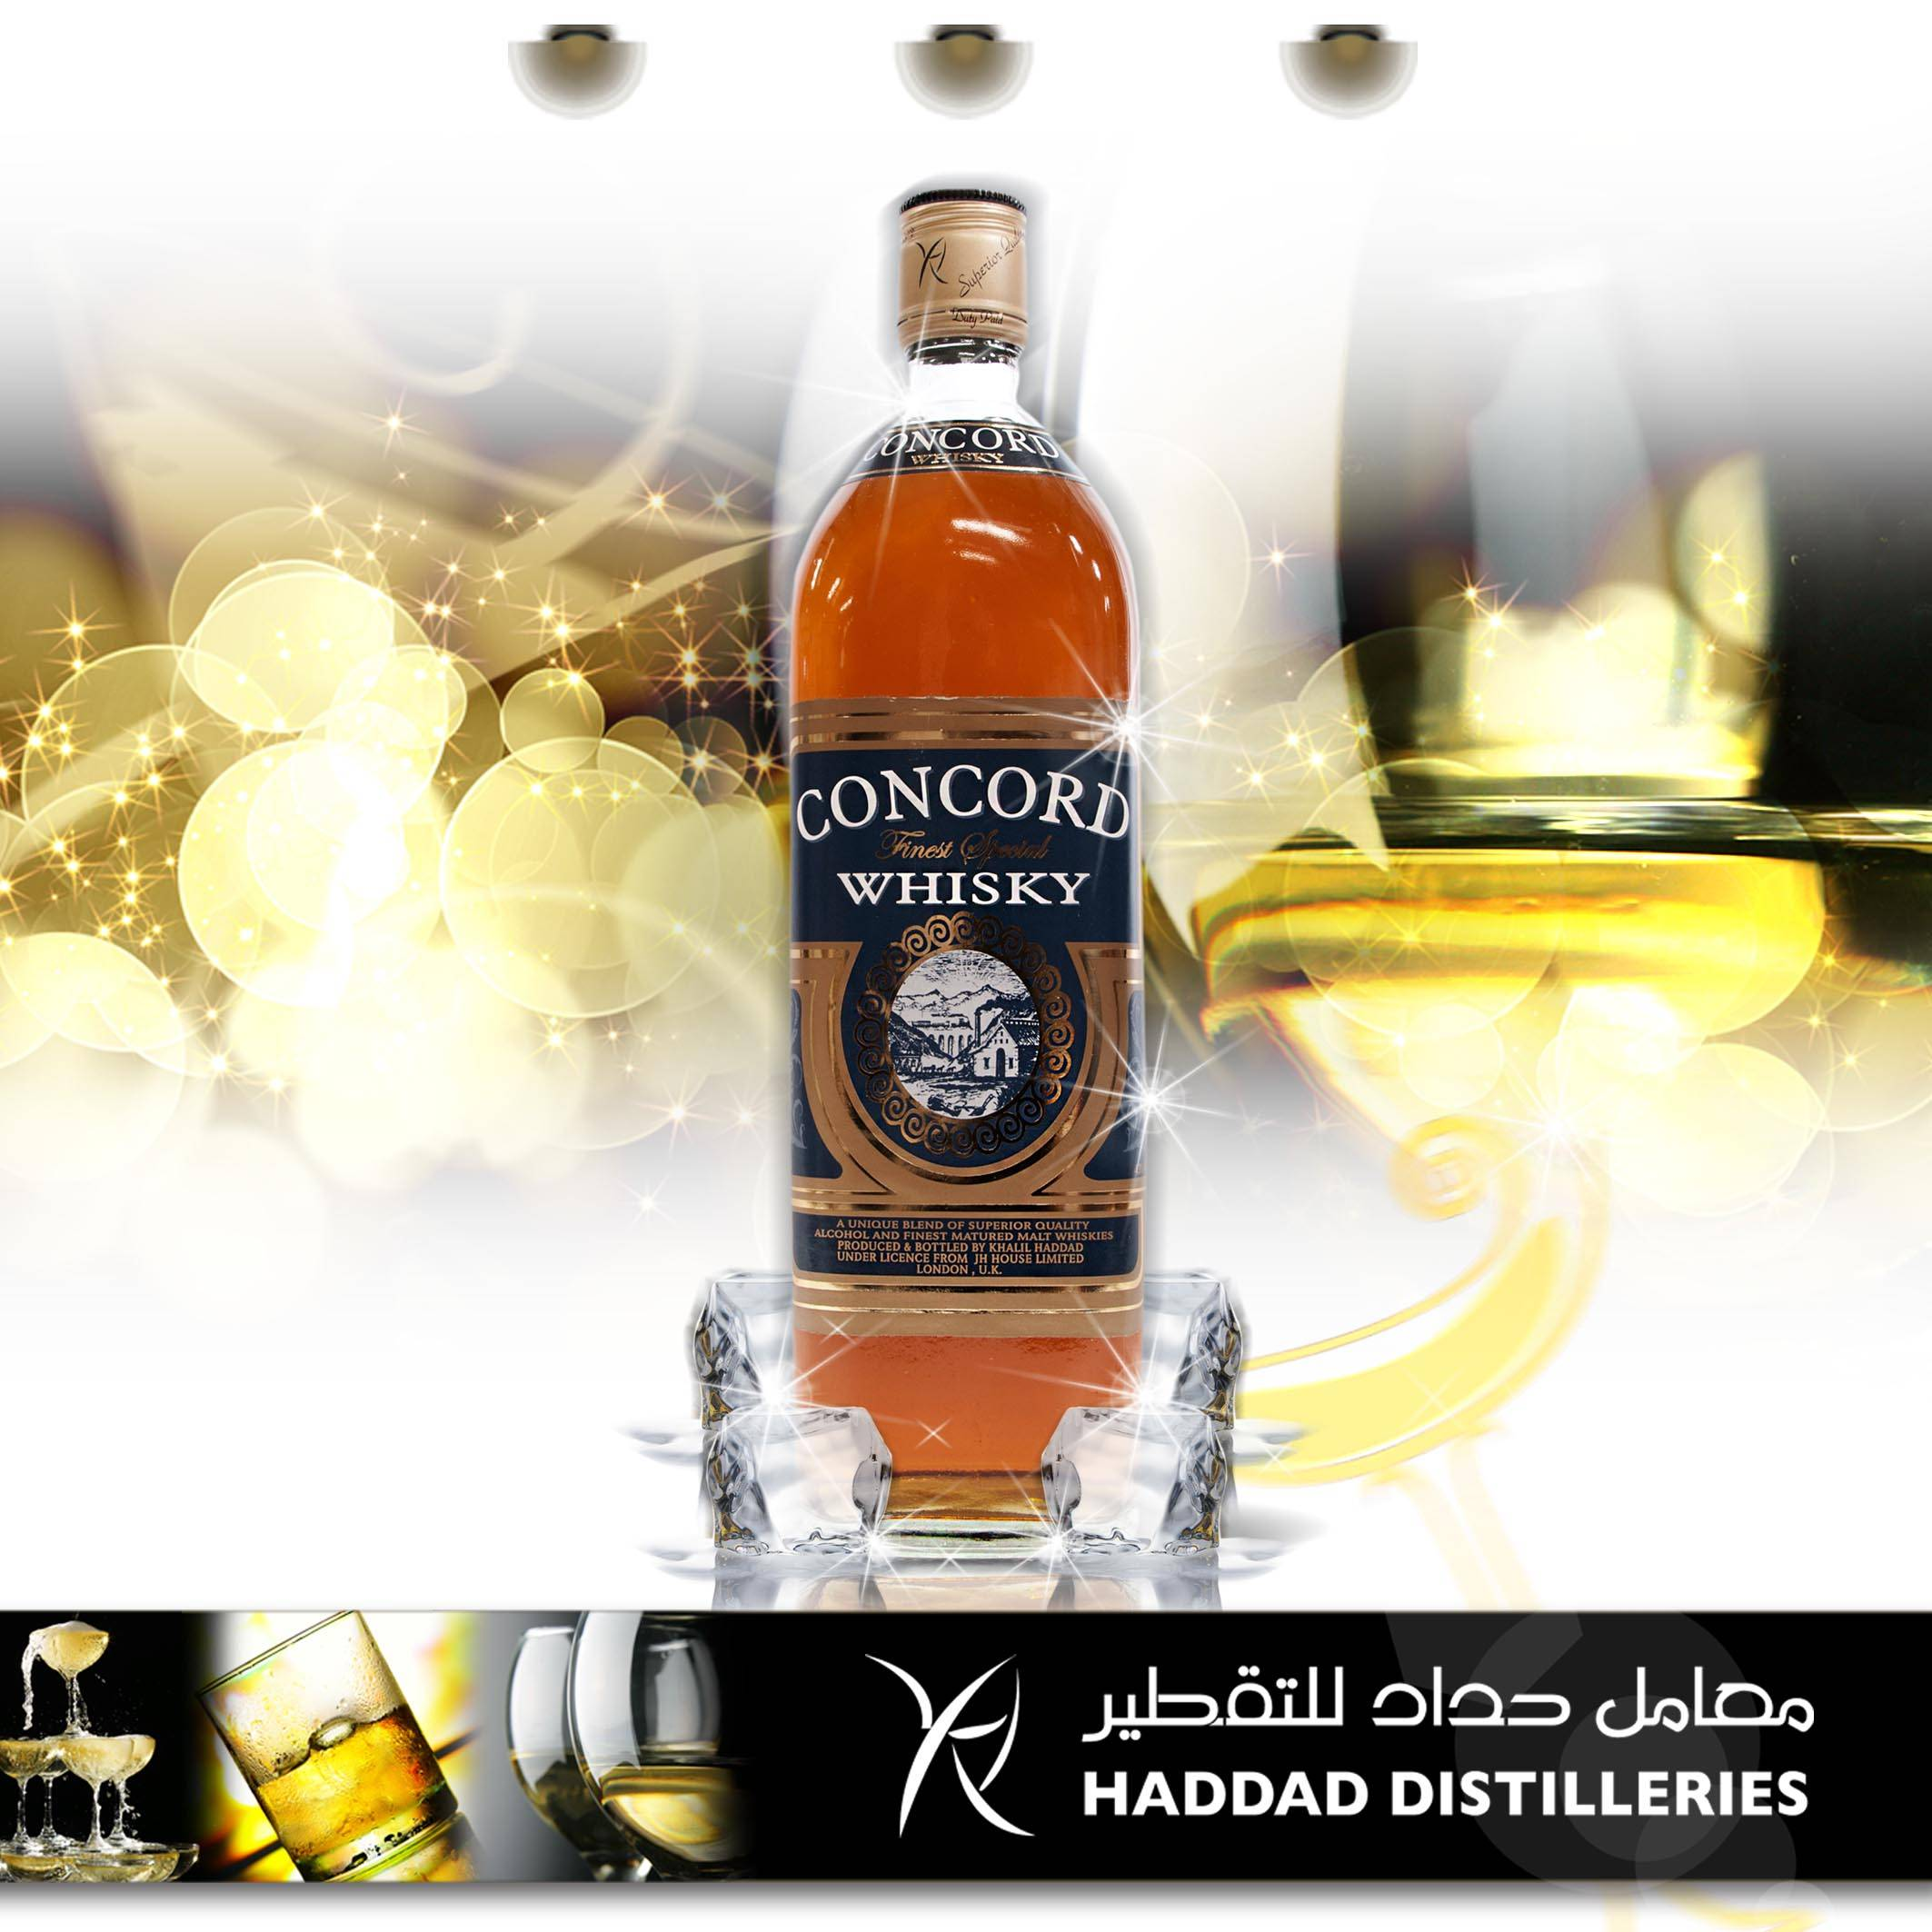 Concord Whisky